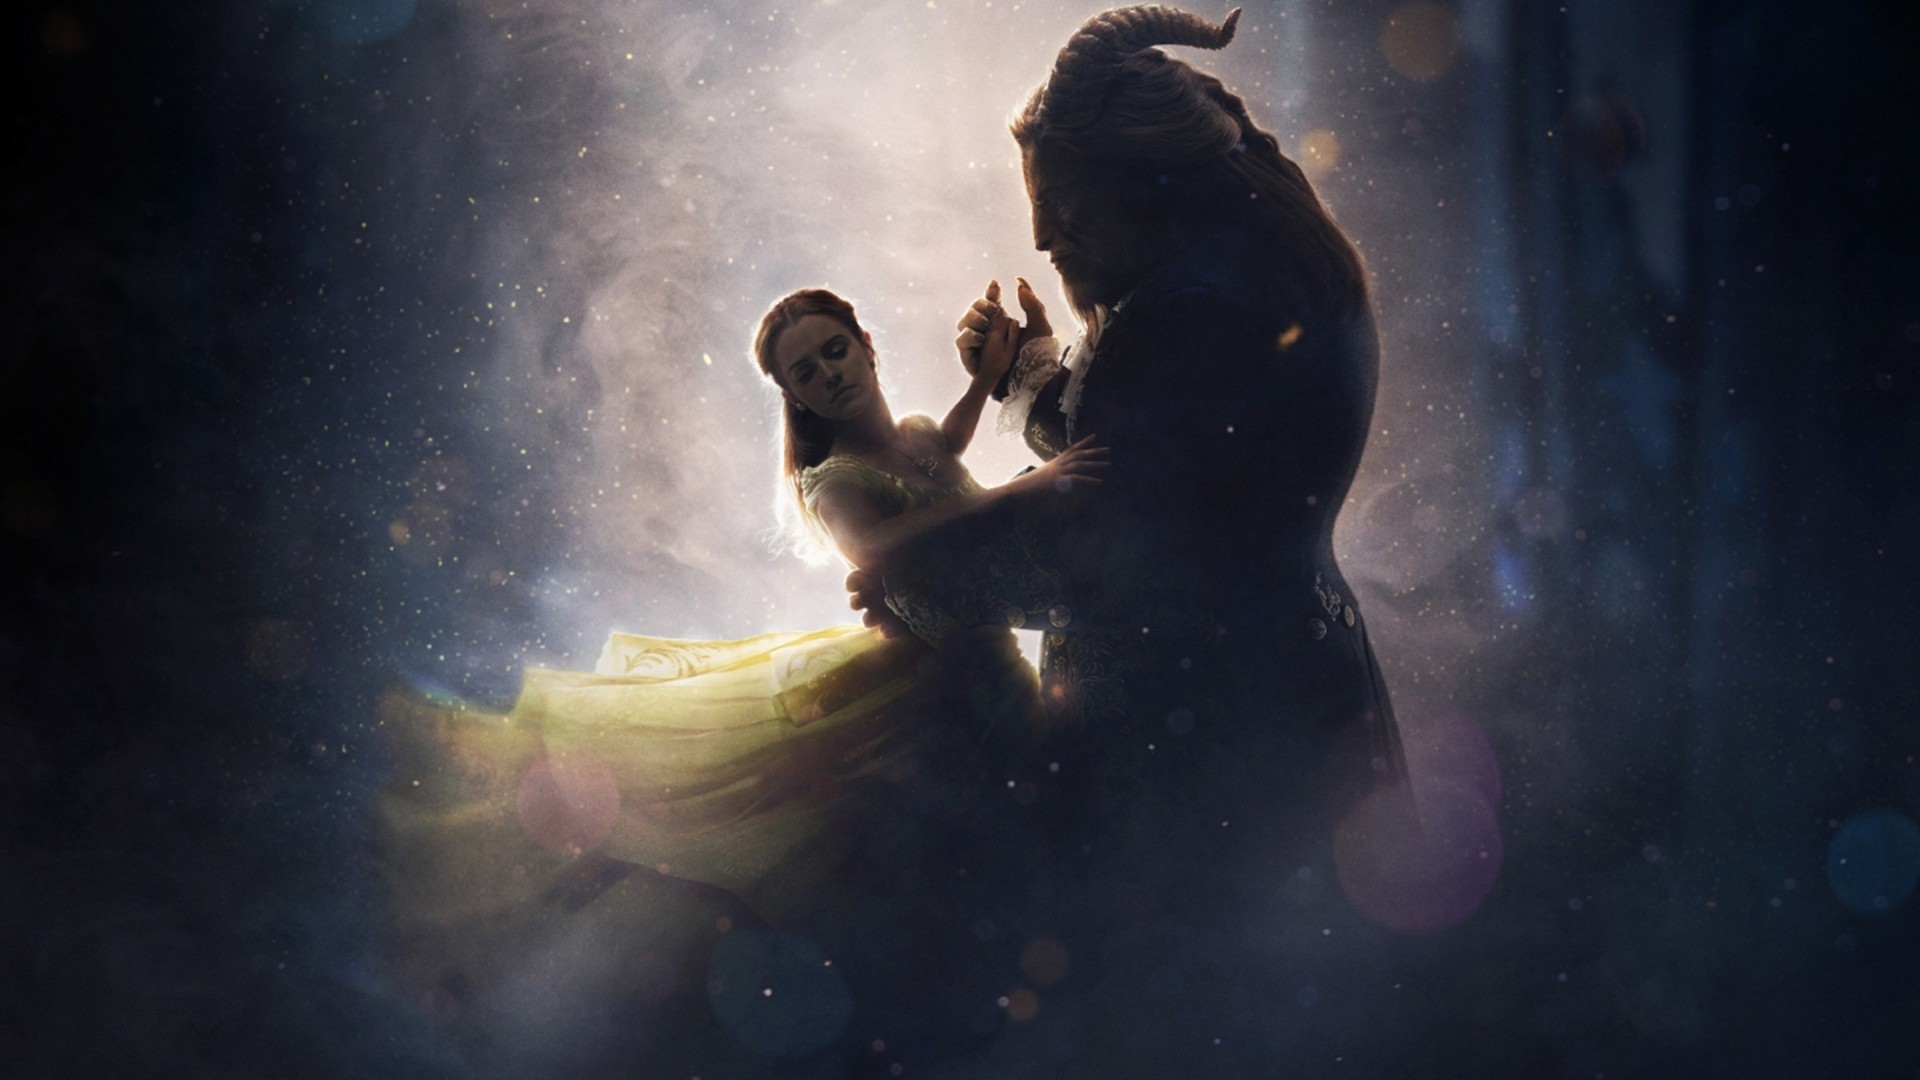 beauty and the beast 2017 silhouette wallpaper - download free hd